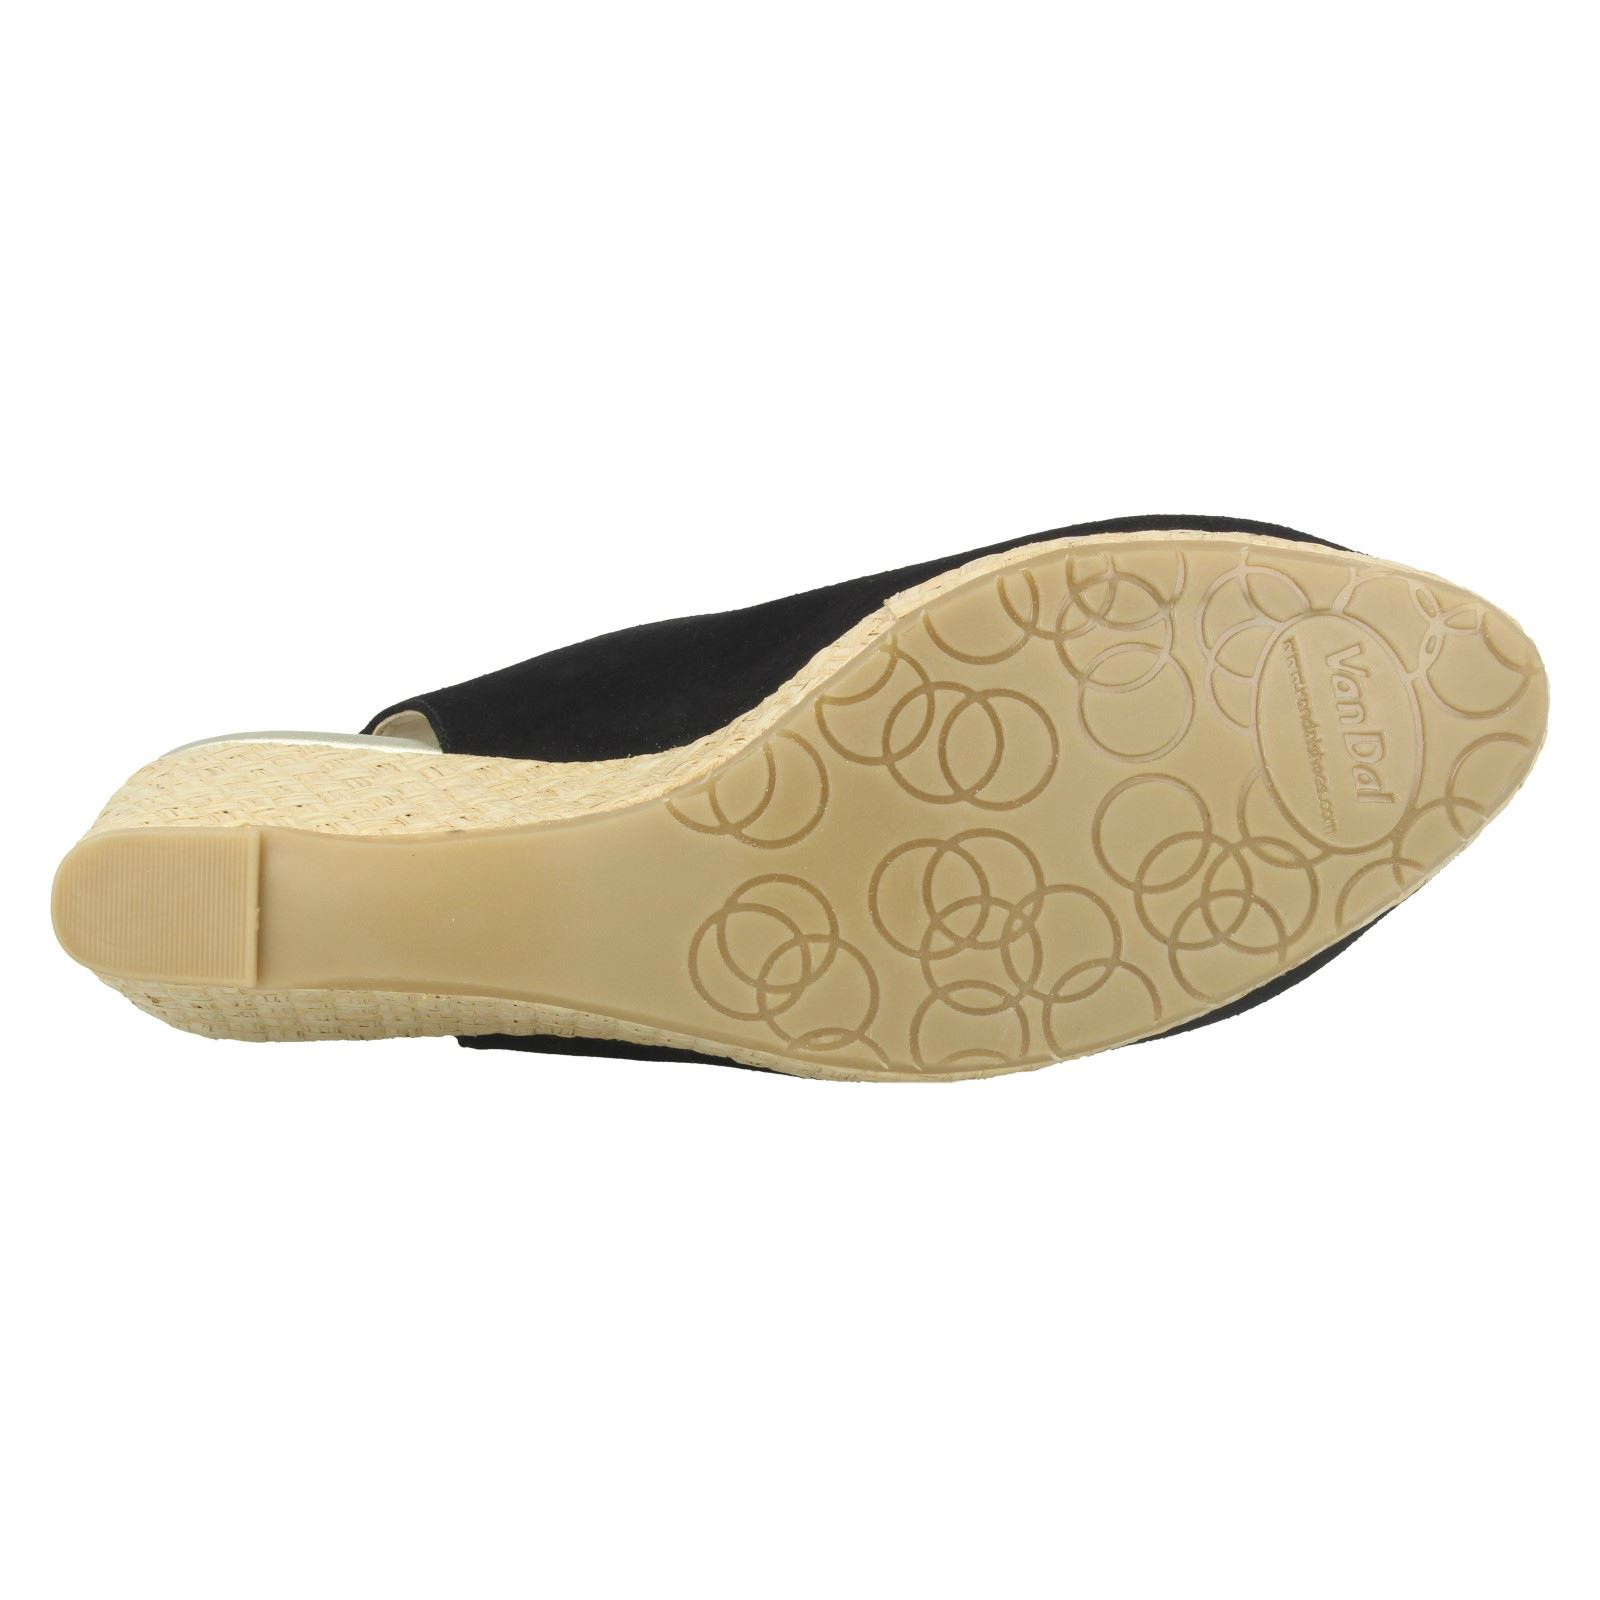 Ladies-Van-Dal-Leather-Wedge-Sandal-With-Woven-Detail-Avalon thumbnail 8